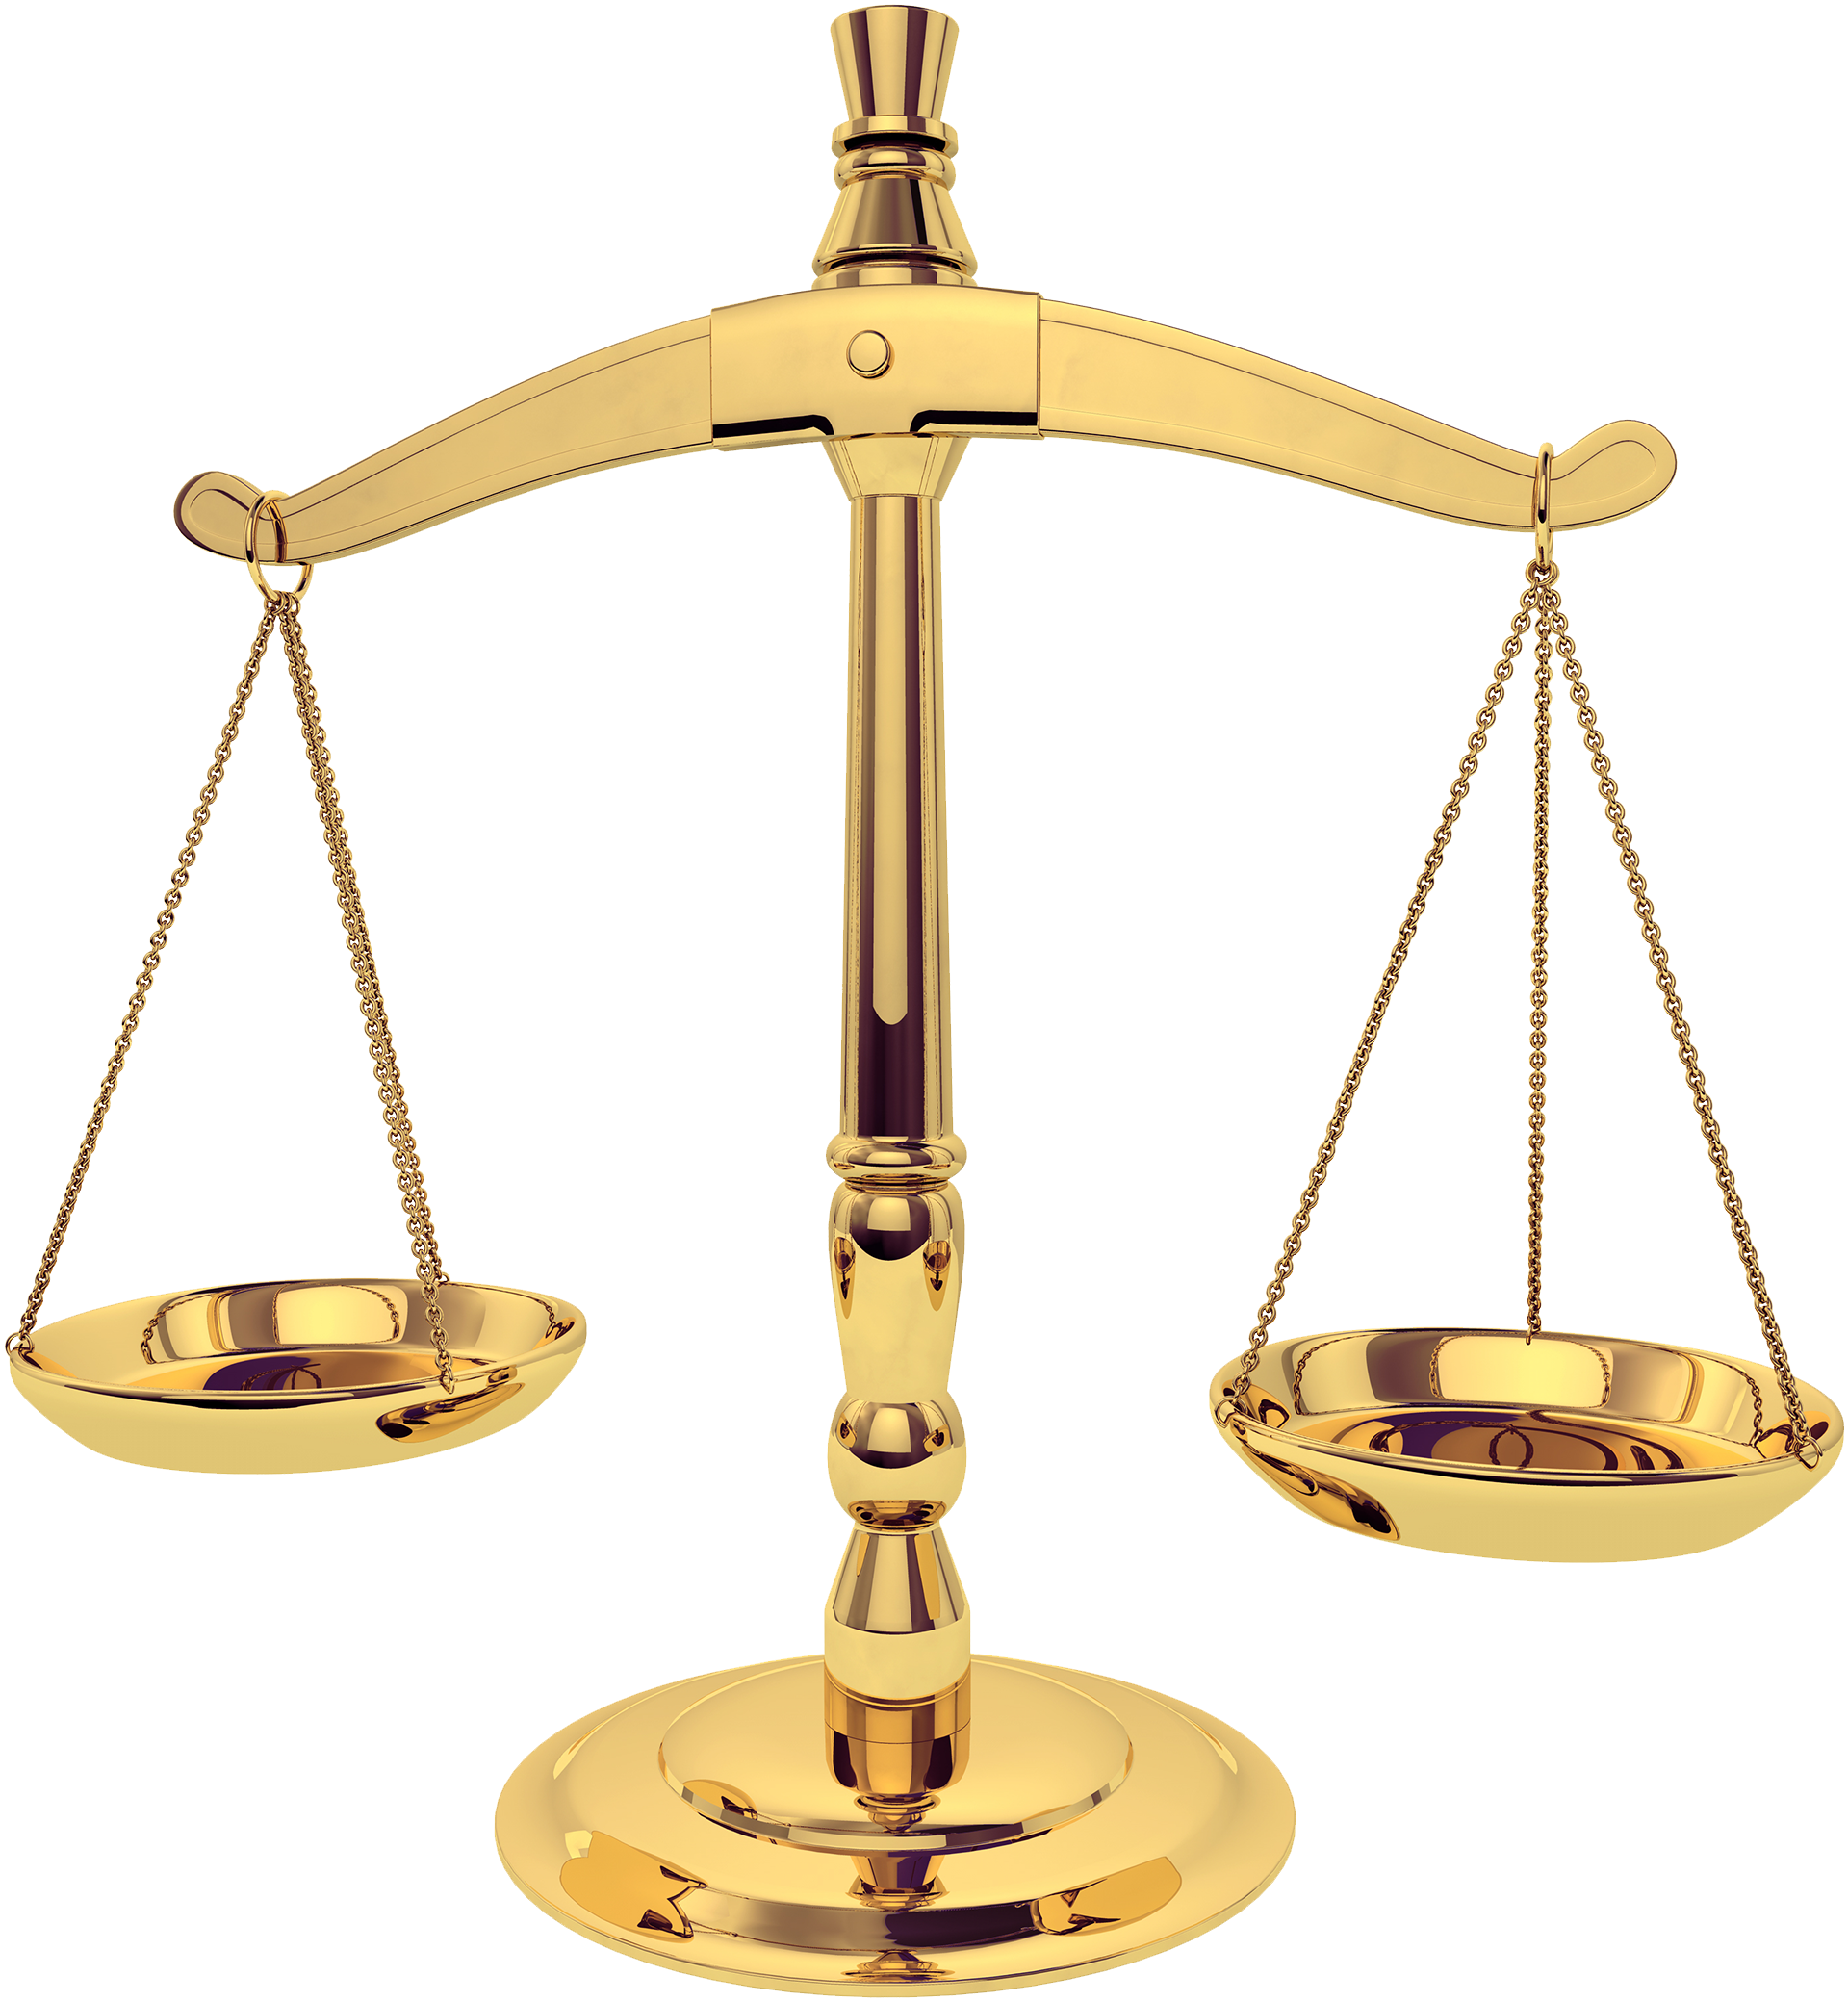 Golden Scales of JUSTICE (TRUTH FACTS EVIDENCE PROOF) EQUALITY FAIRNESS PLURALISM - BE A CRITICAL THINKER - THINK FOR YOURSELF - QUESTION AUTHORITY - ALWAYS SPEAK TRUTH TO POWER